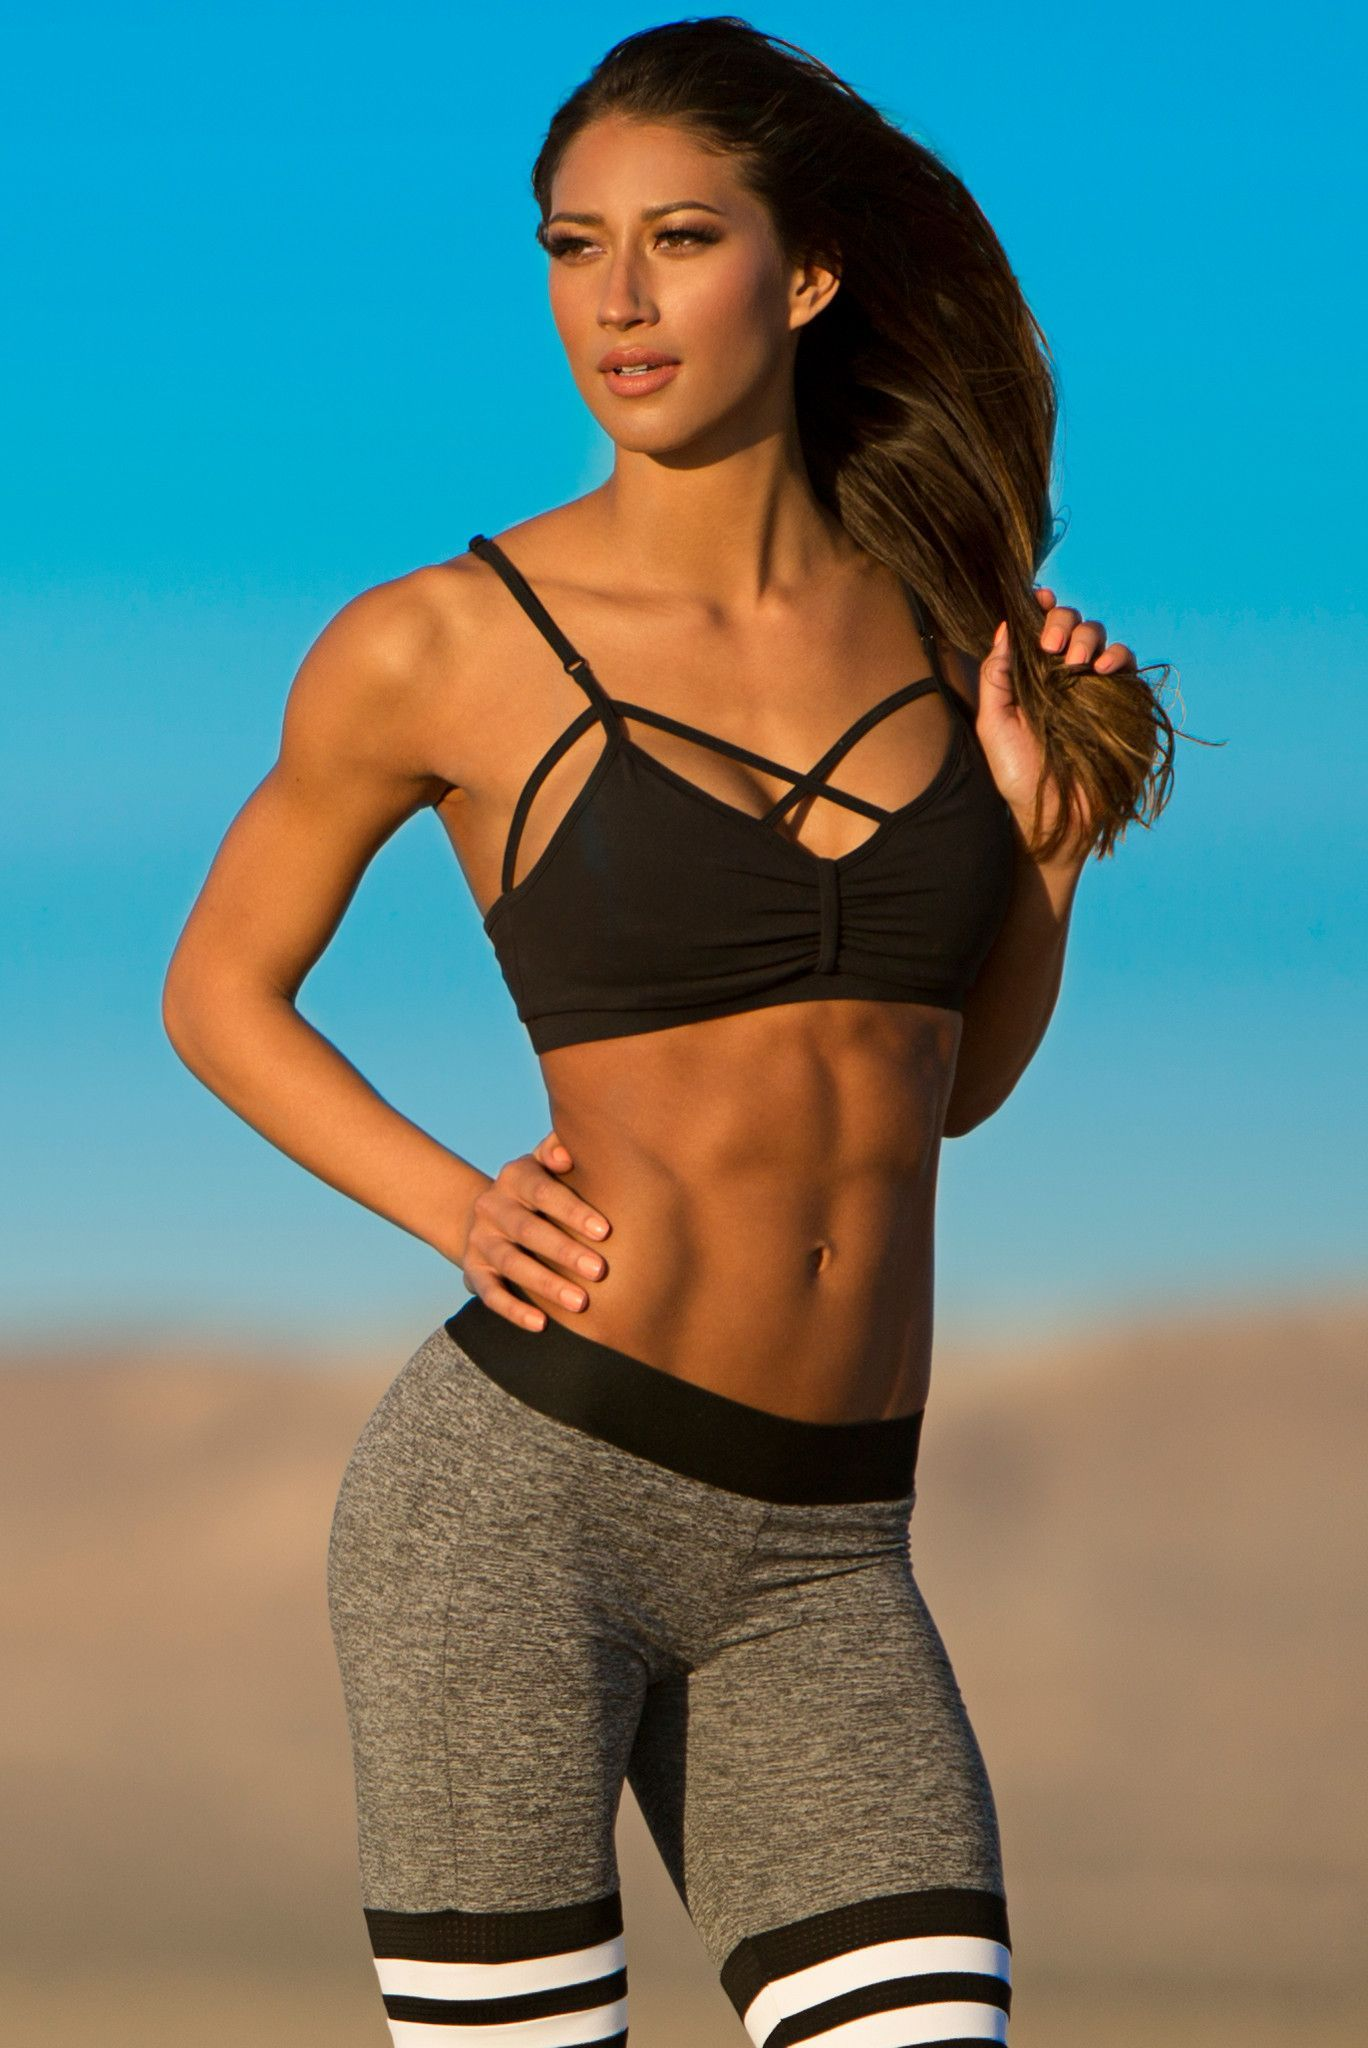 351e3d70f8313 We love this Bombshell Famous Sports Bra! If you re looking for ...